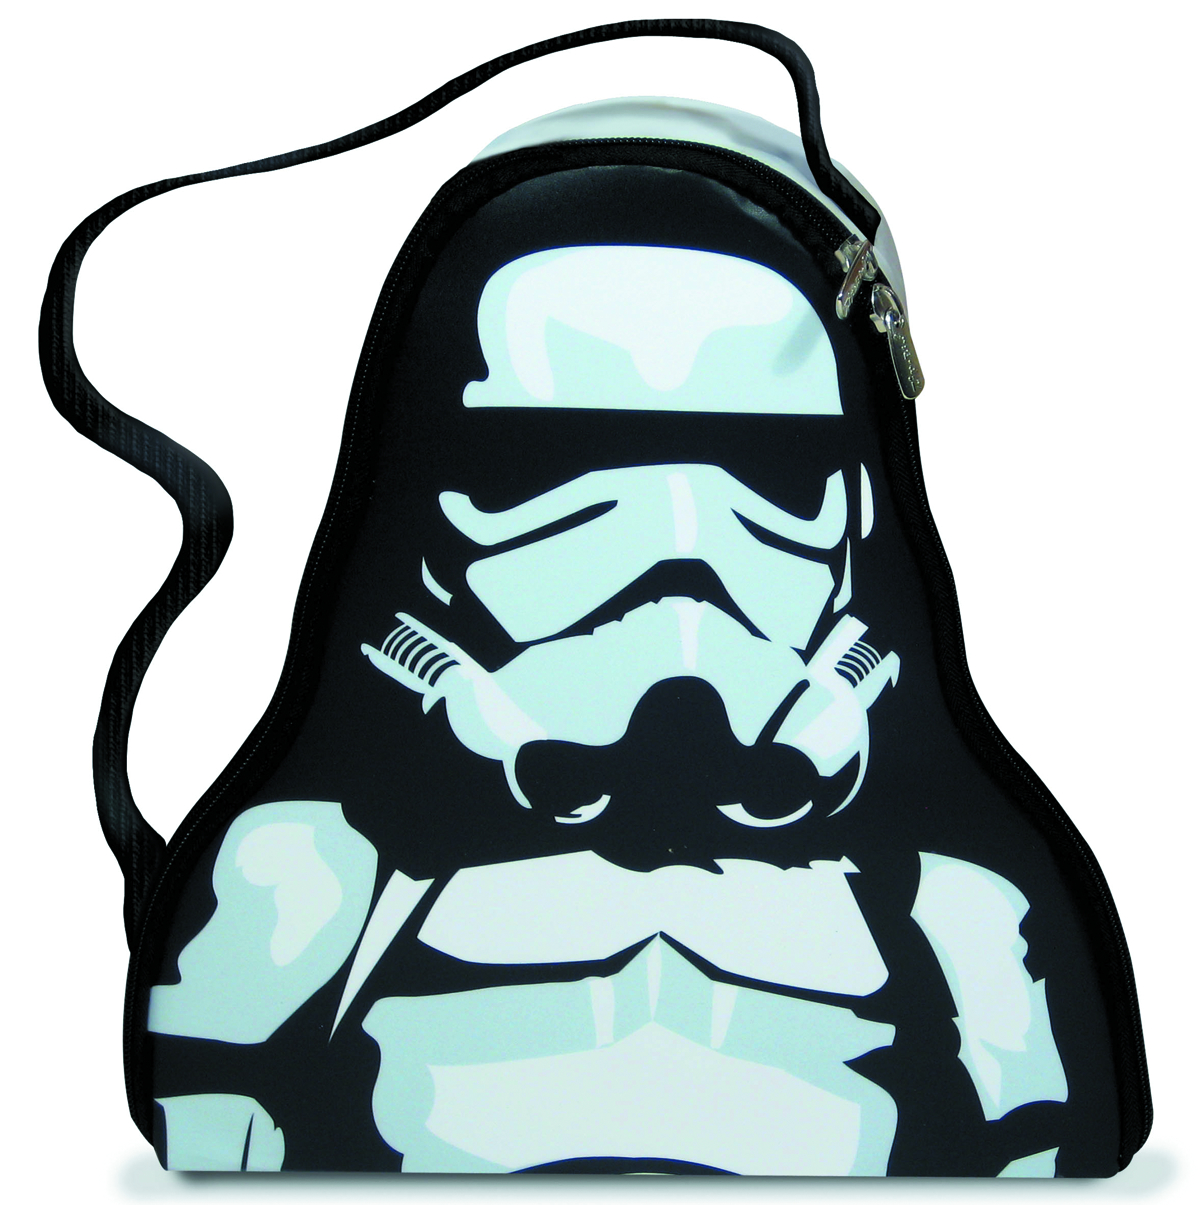 LEGO SW STORMTROOPER TOY STORAGE & CARRY CASE